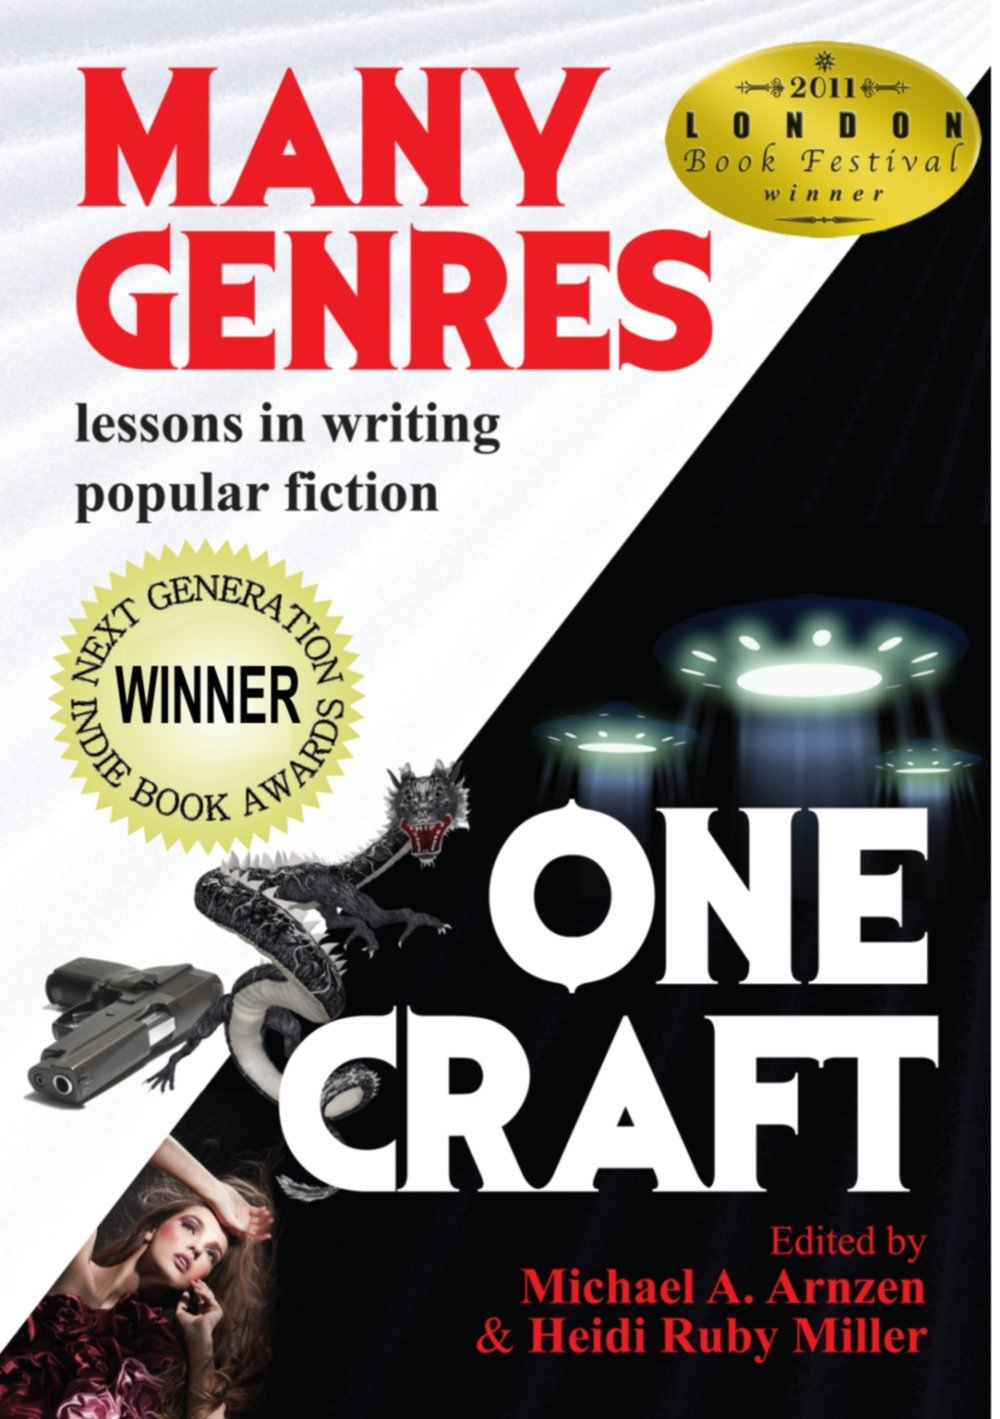 http://www.amazon.com/Many-Genres-One-Craft-Lessons/dp/0938467085/ref=sr_1_1?s=books&ie=UTF8&qid=1406122978&sr=1-1&keywords=many+genres+one+craft+lessons+in+writing+popular+fiction&dpPl=1